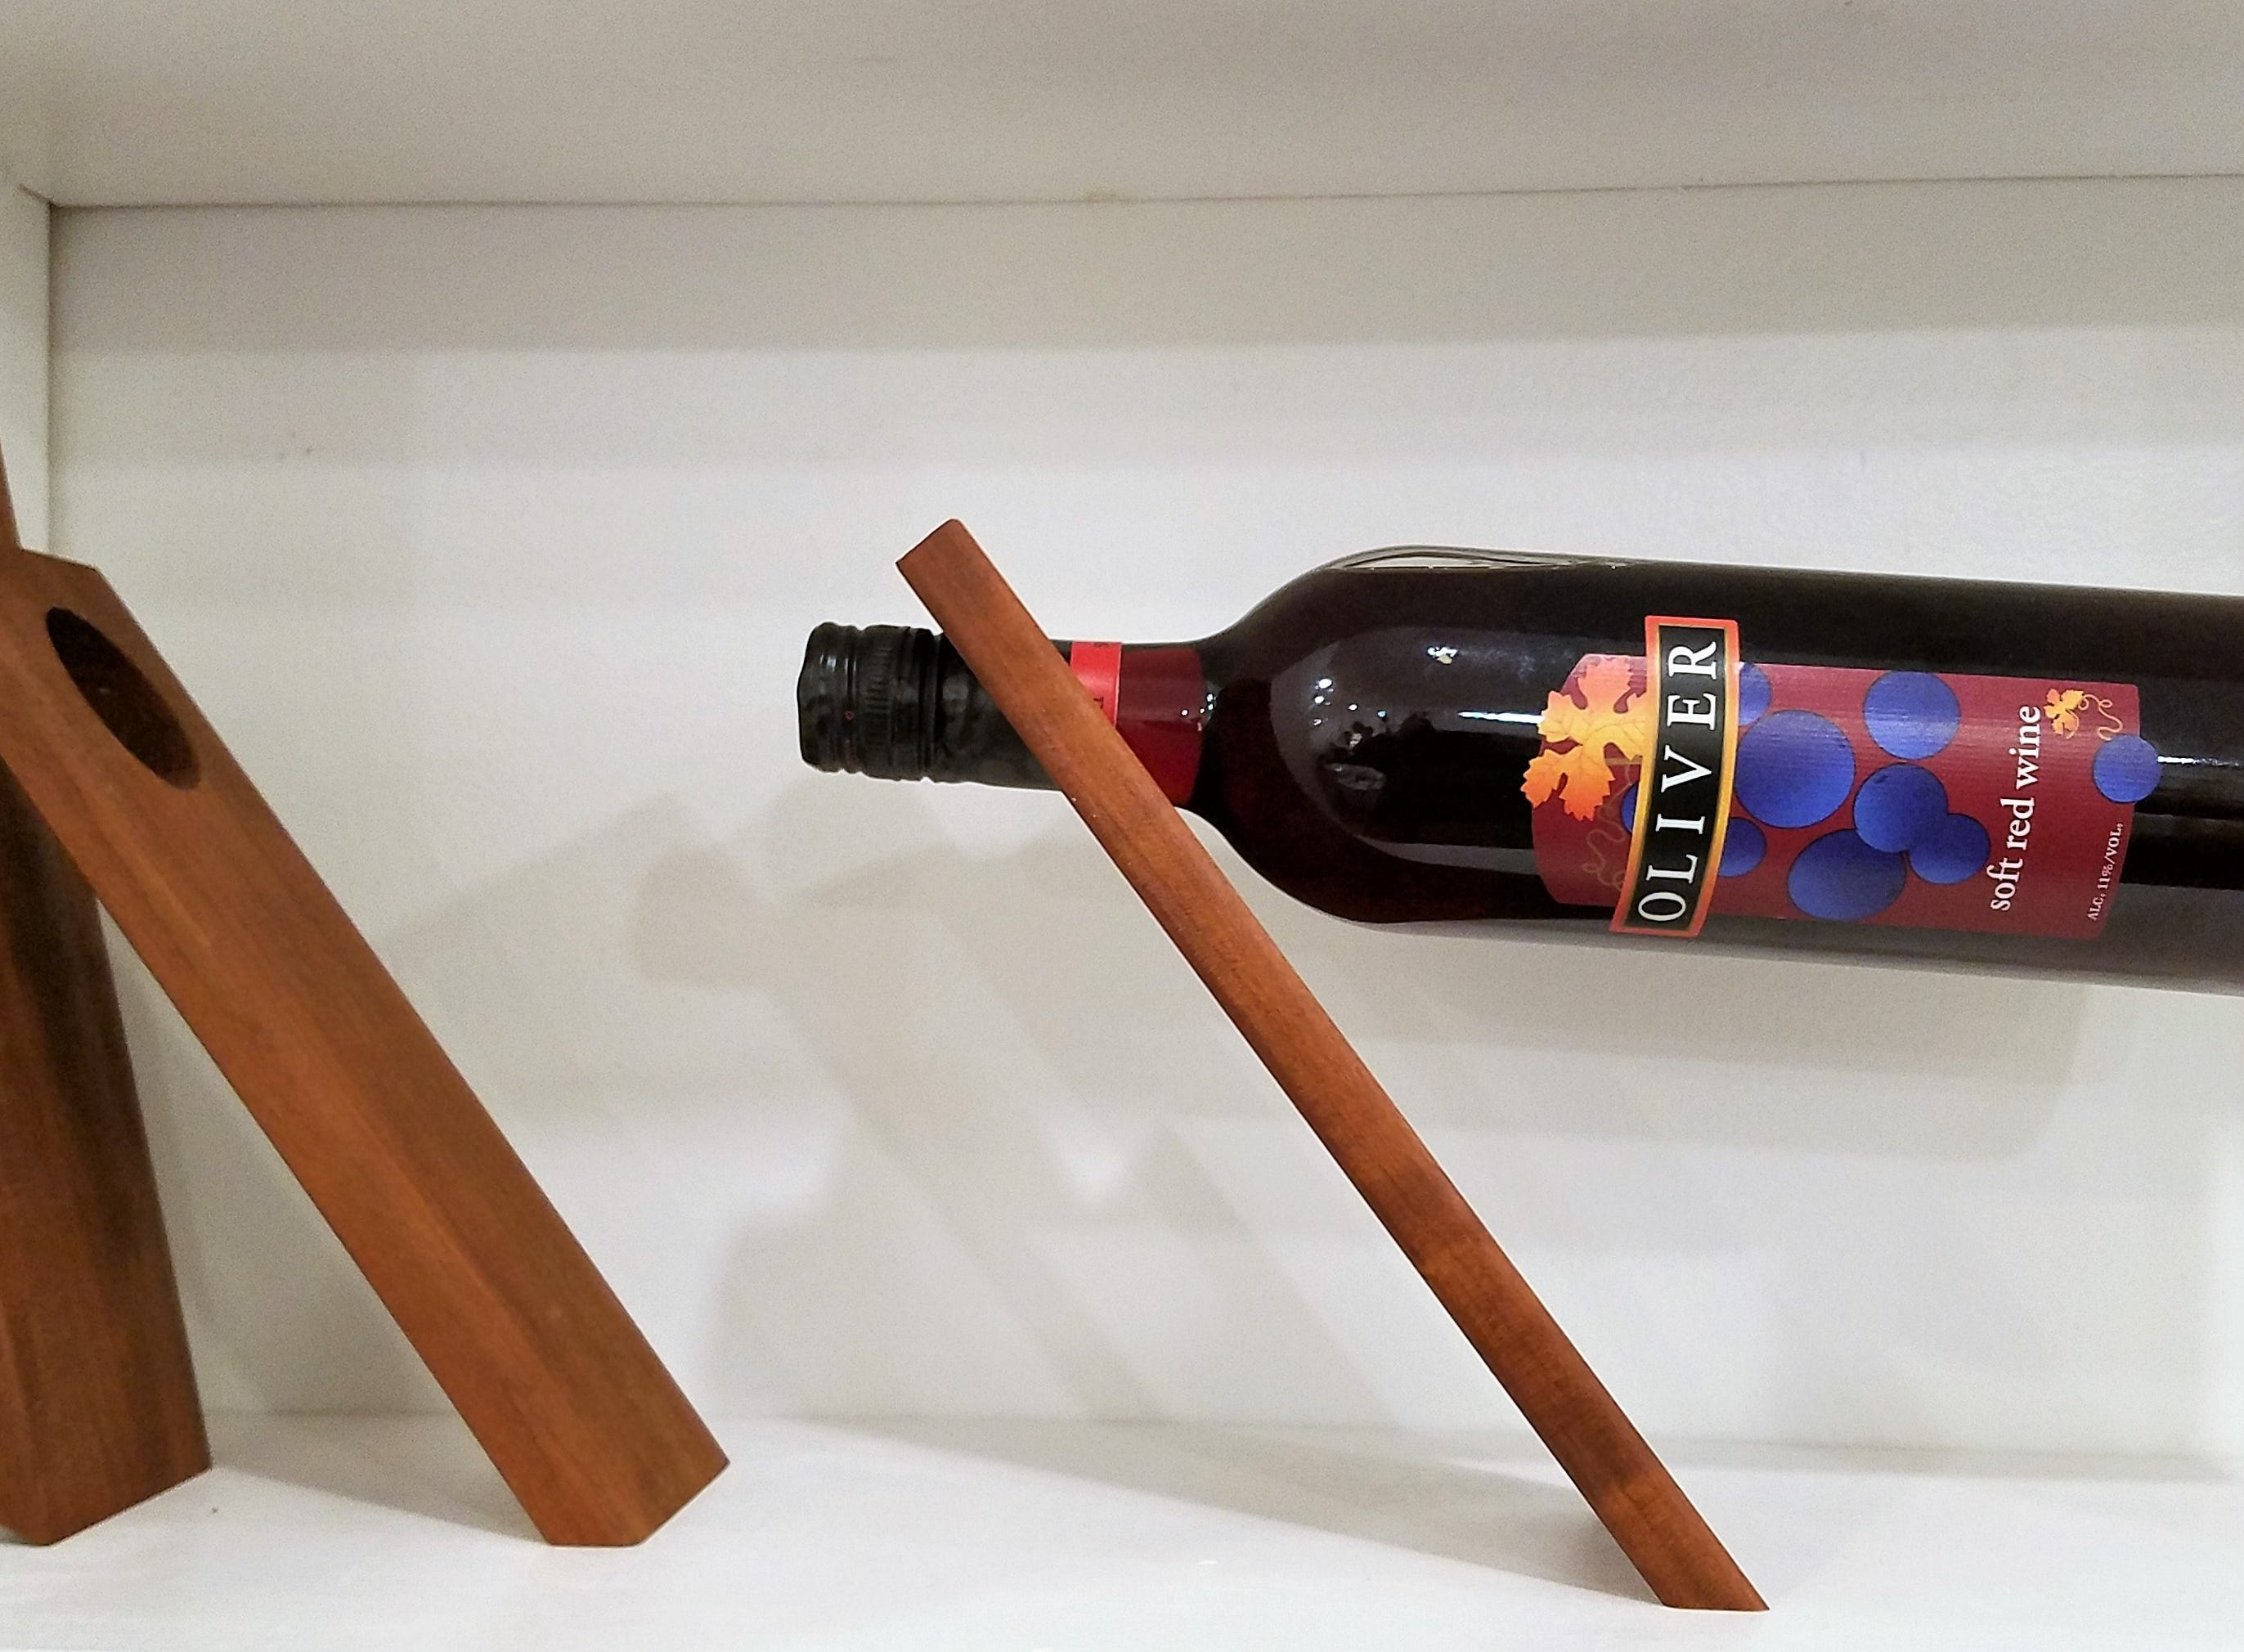 River City Coffee + Goods, wine bottle holder by Dickinson Kitchenware.